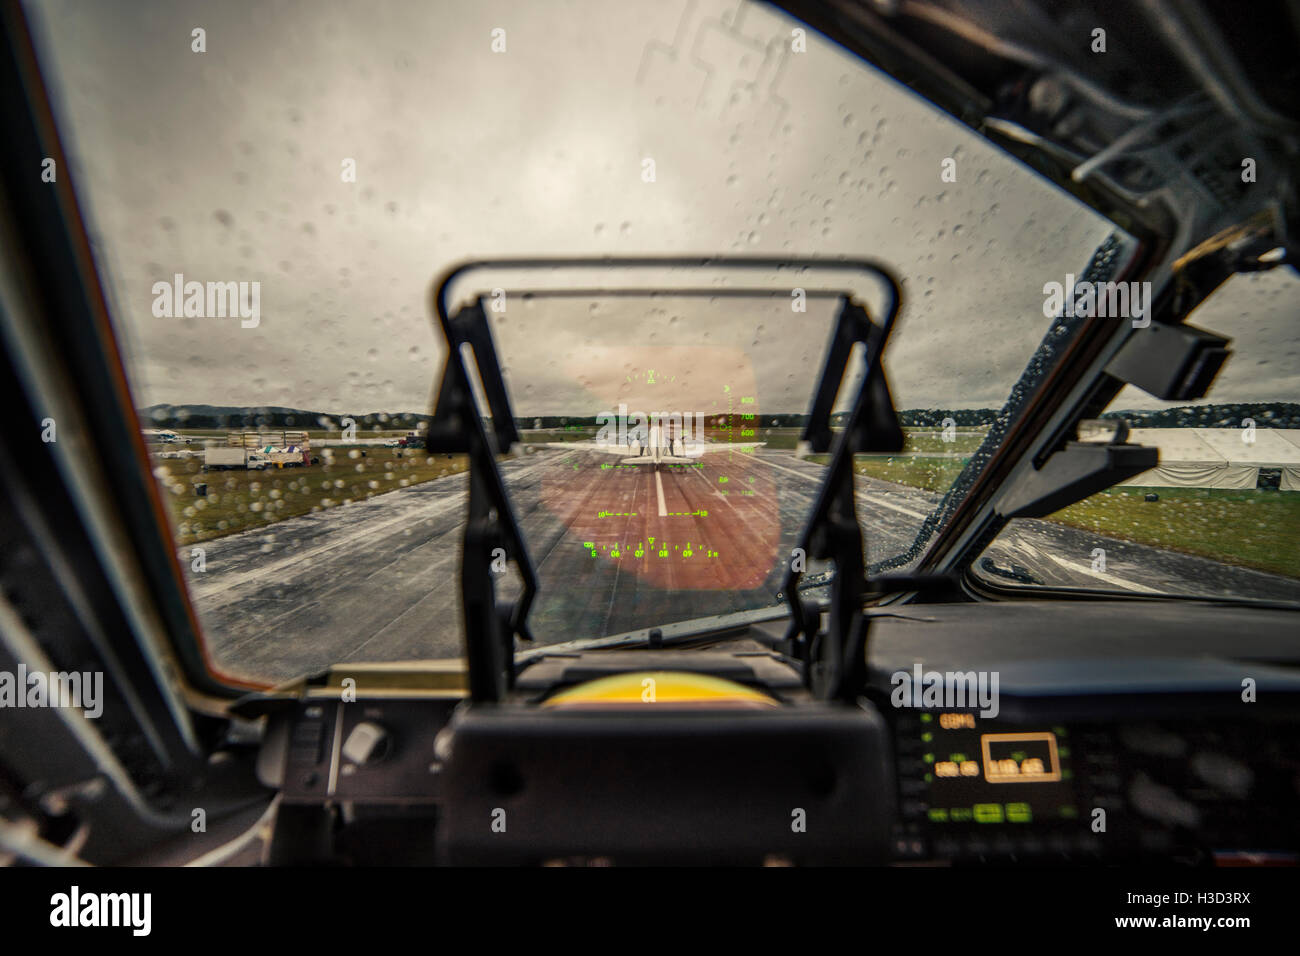 Airplane on runway against sky seen through wet windshield - Stock Image